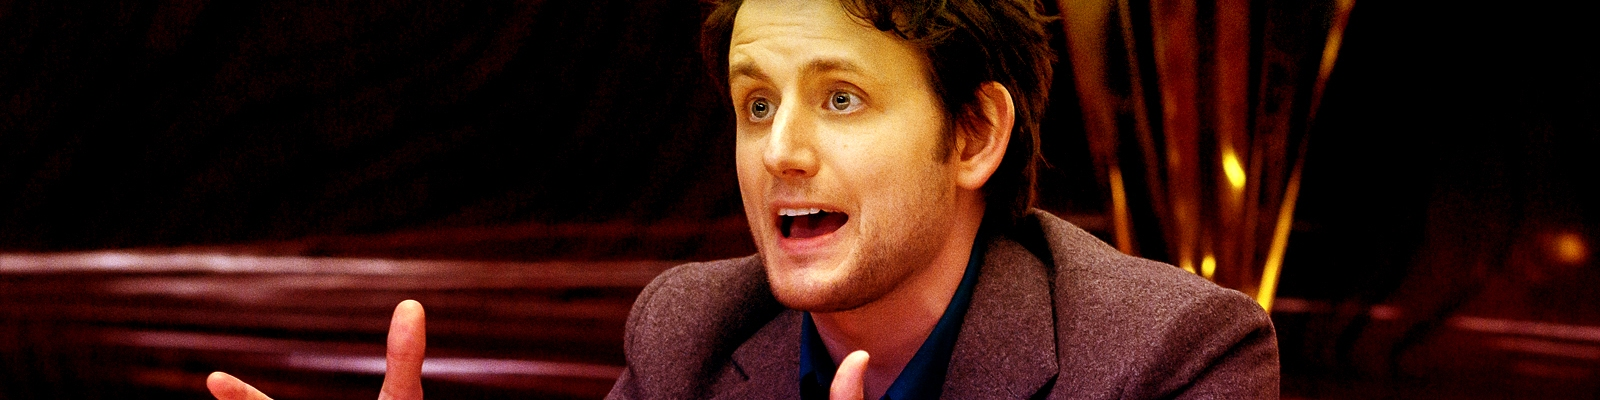 Zach Woods On Ruining David Bowie And Playing A Friendly Nihilist On 'Avenue 5'